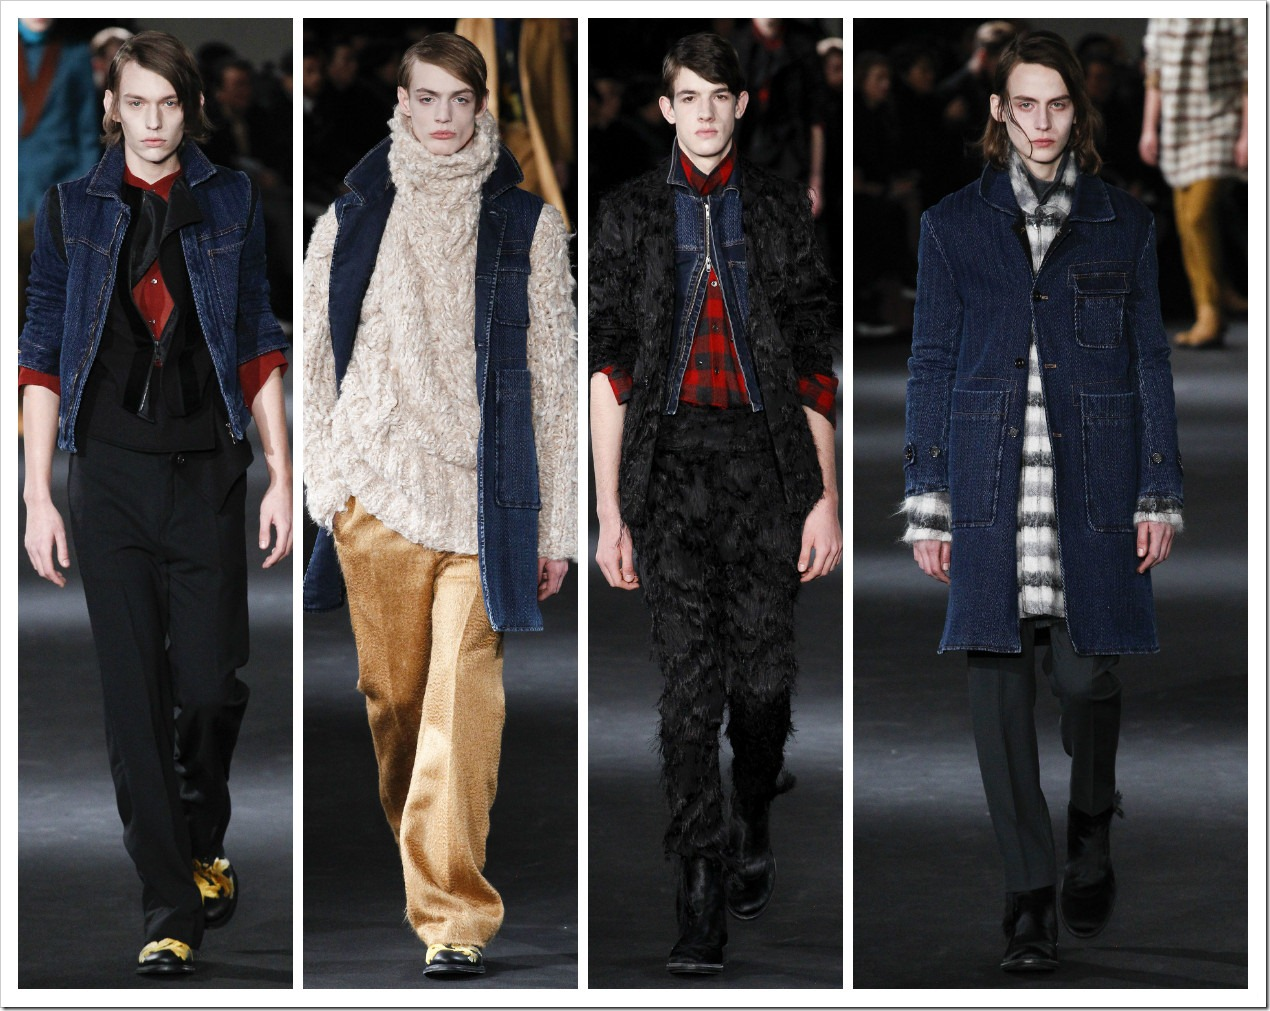 Ann Demeulemeester Menswear Collection at Fall 2016